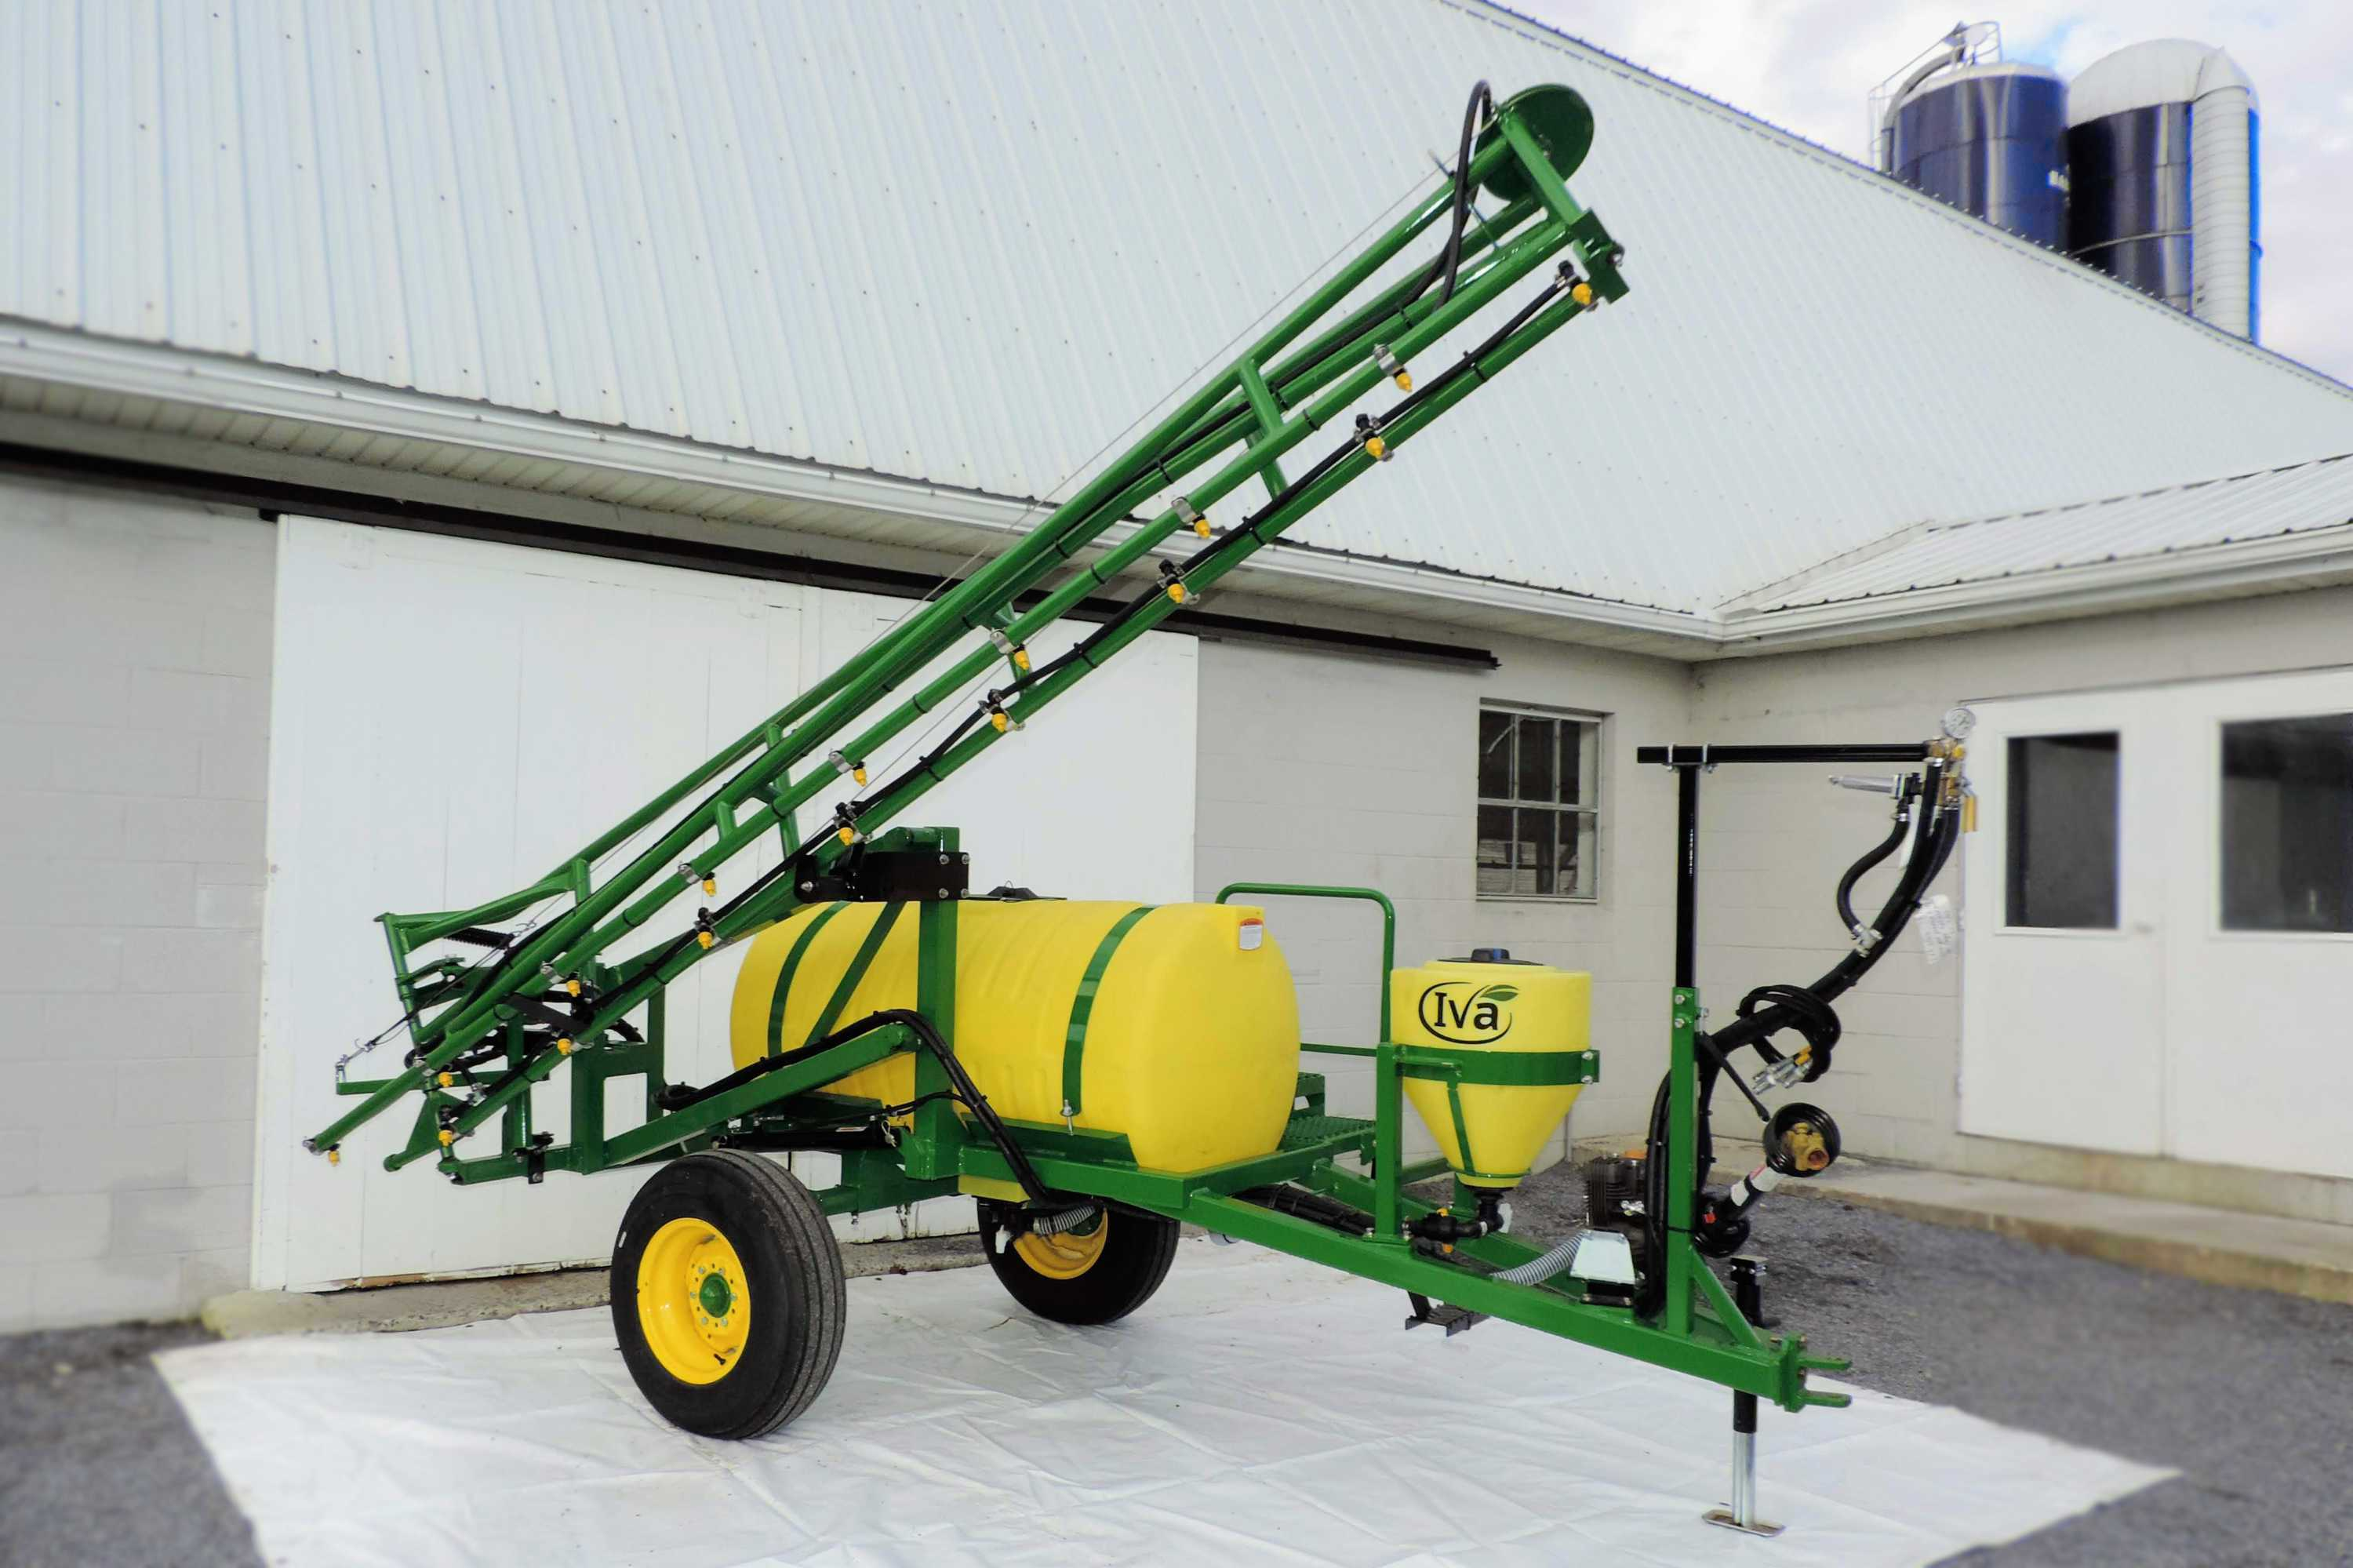 200 gallon trailer sweet corn sprayer with 25' single sided boom